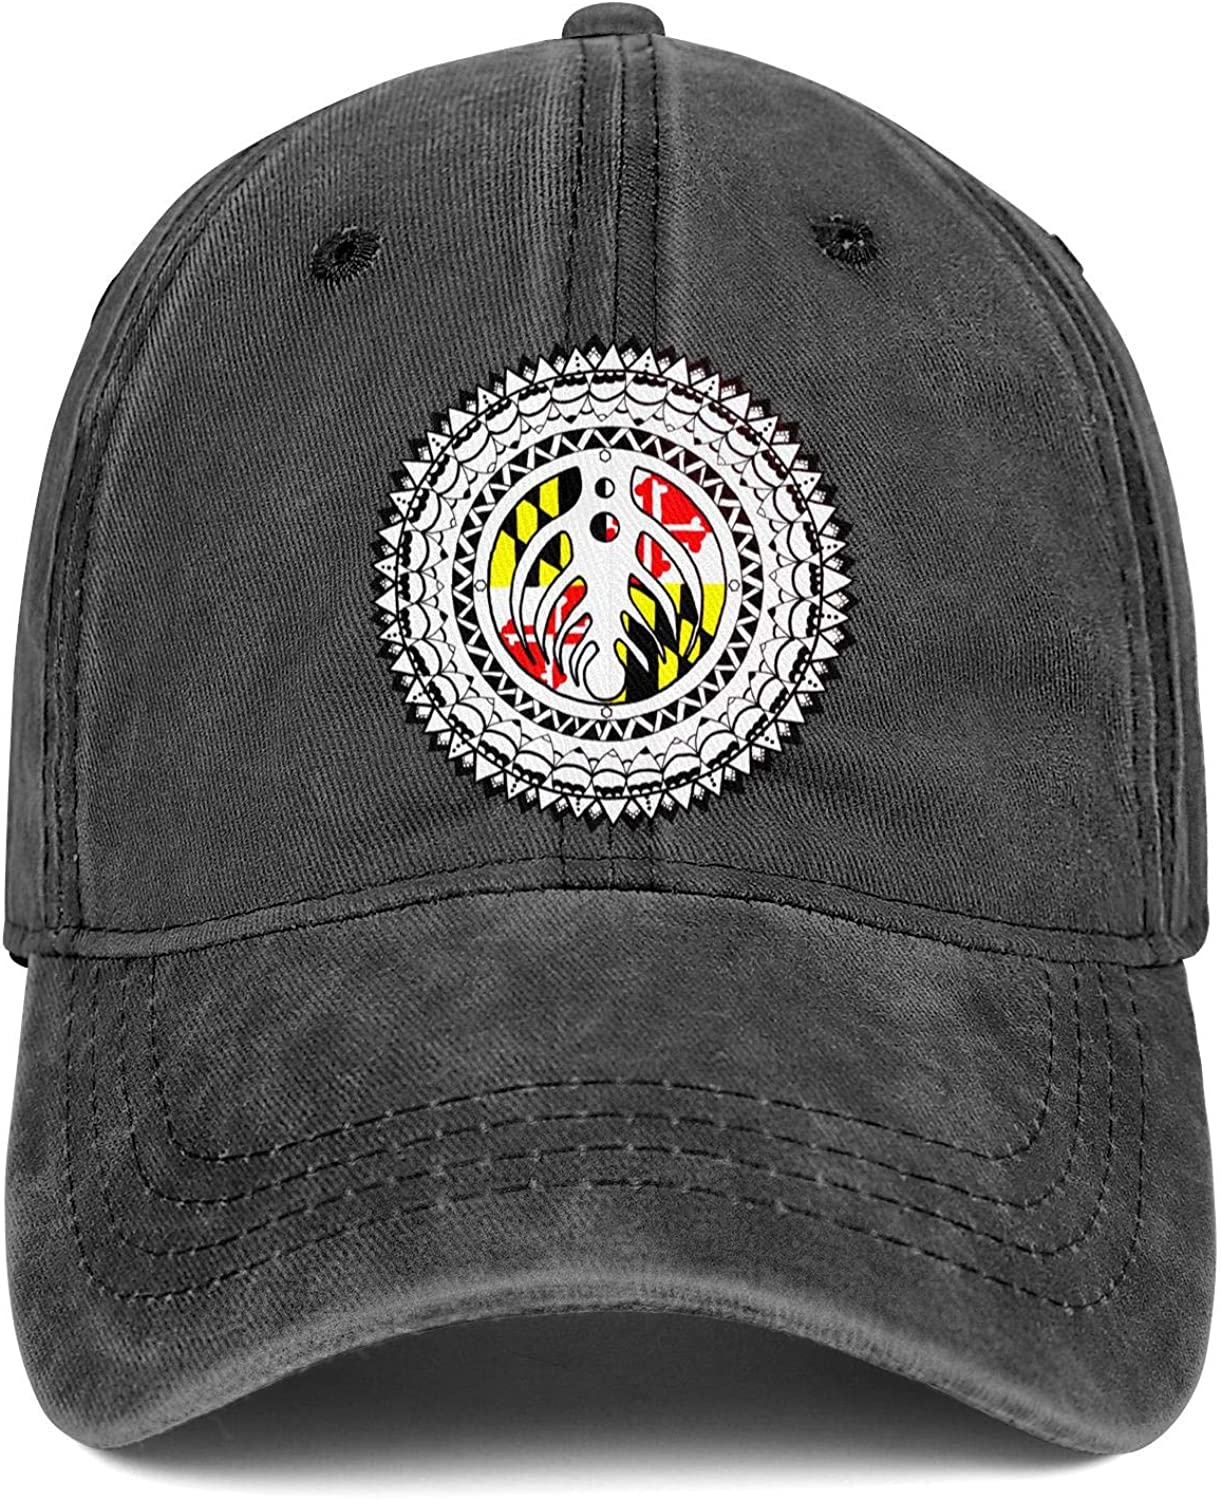 SNEFUEE Men Womens Bassnectar Maryland Zentangle Cap Trendy Denim Cowboy Hats Hiking Caps